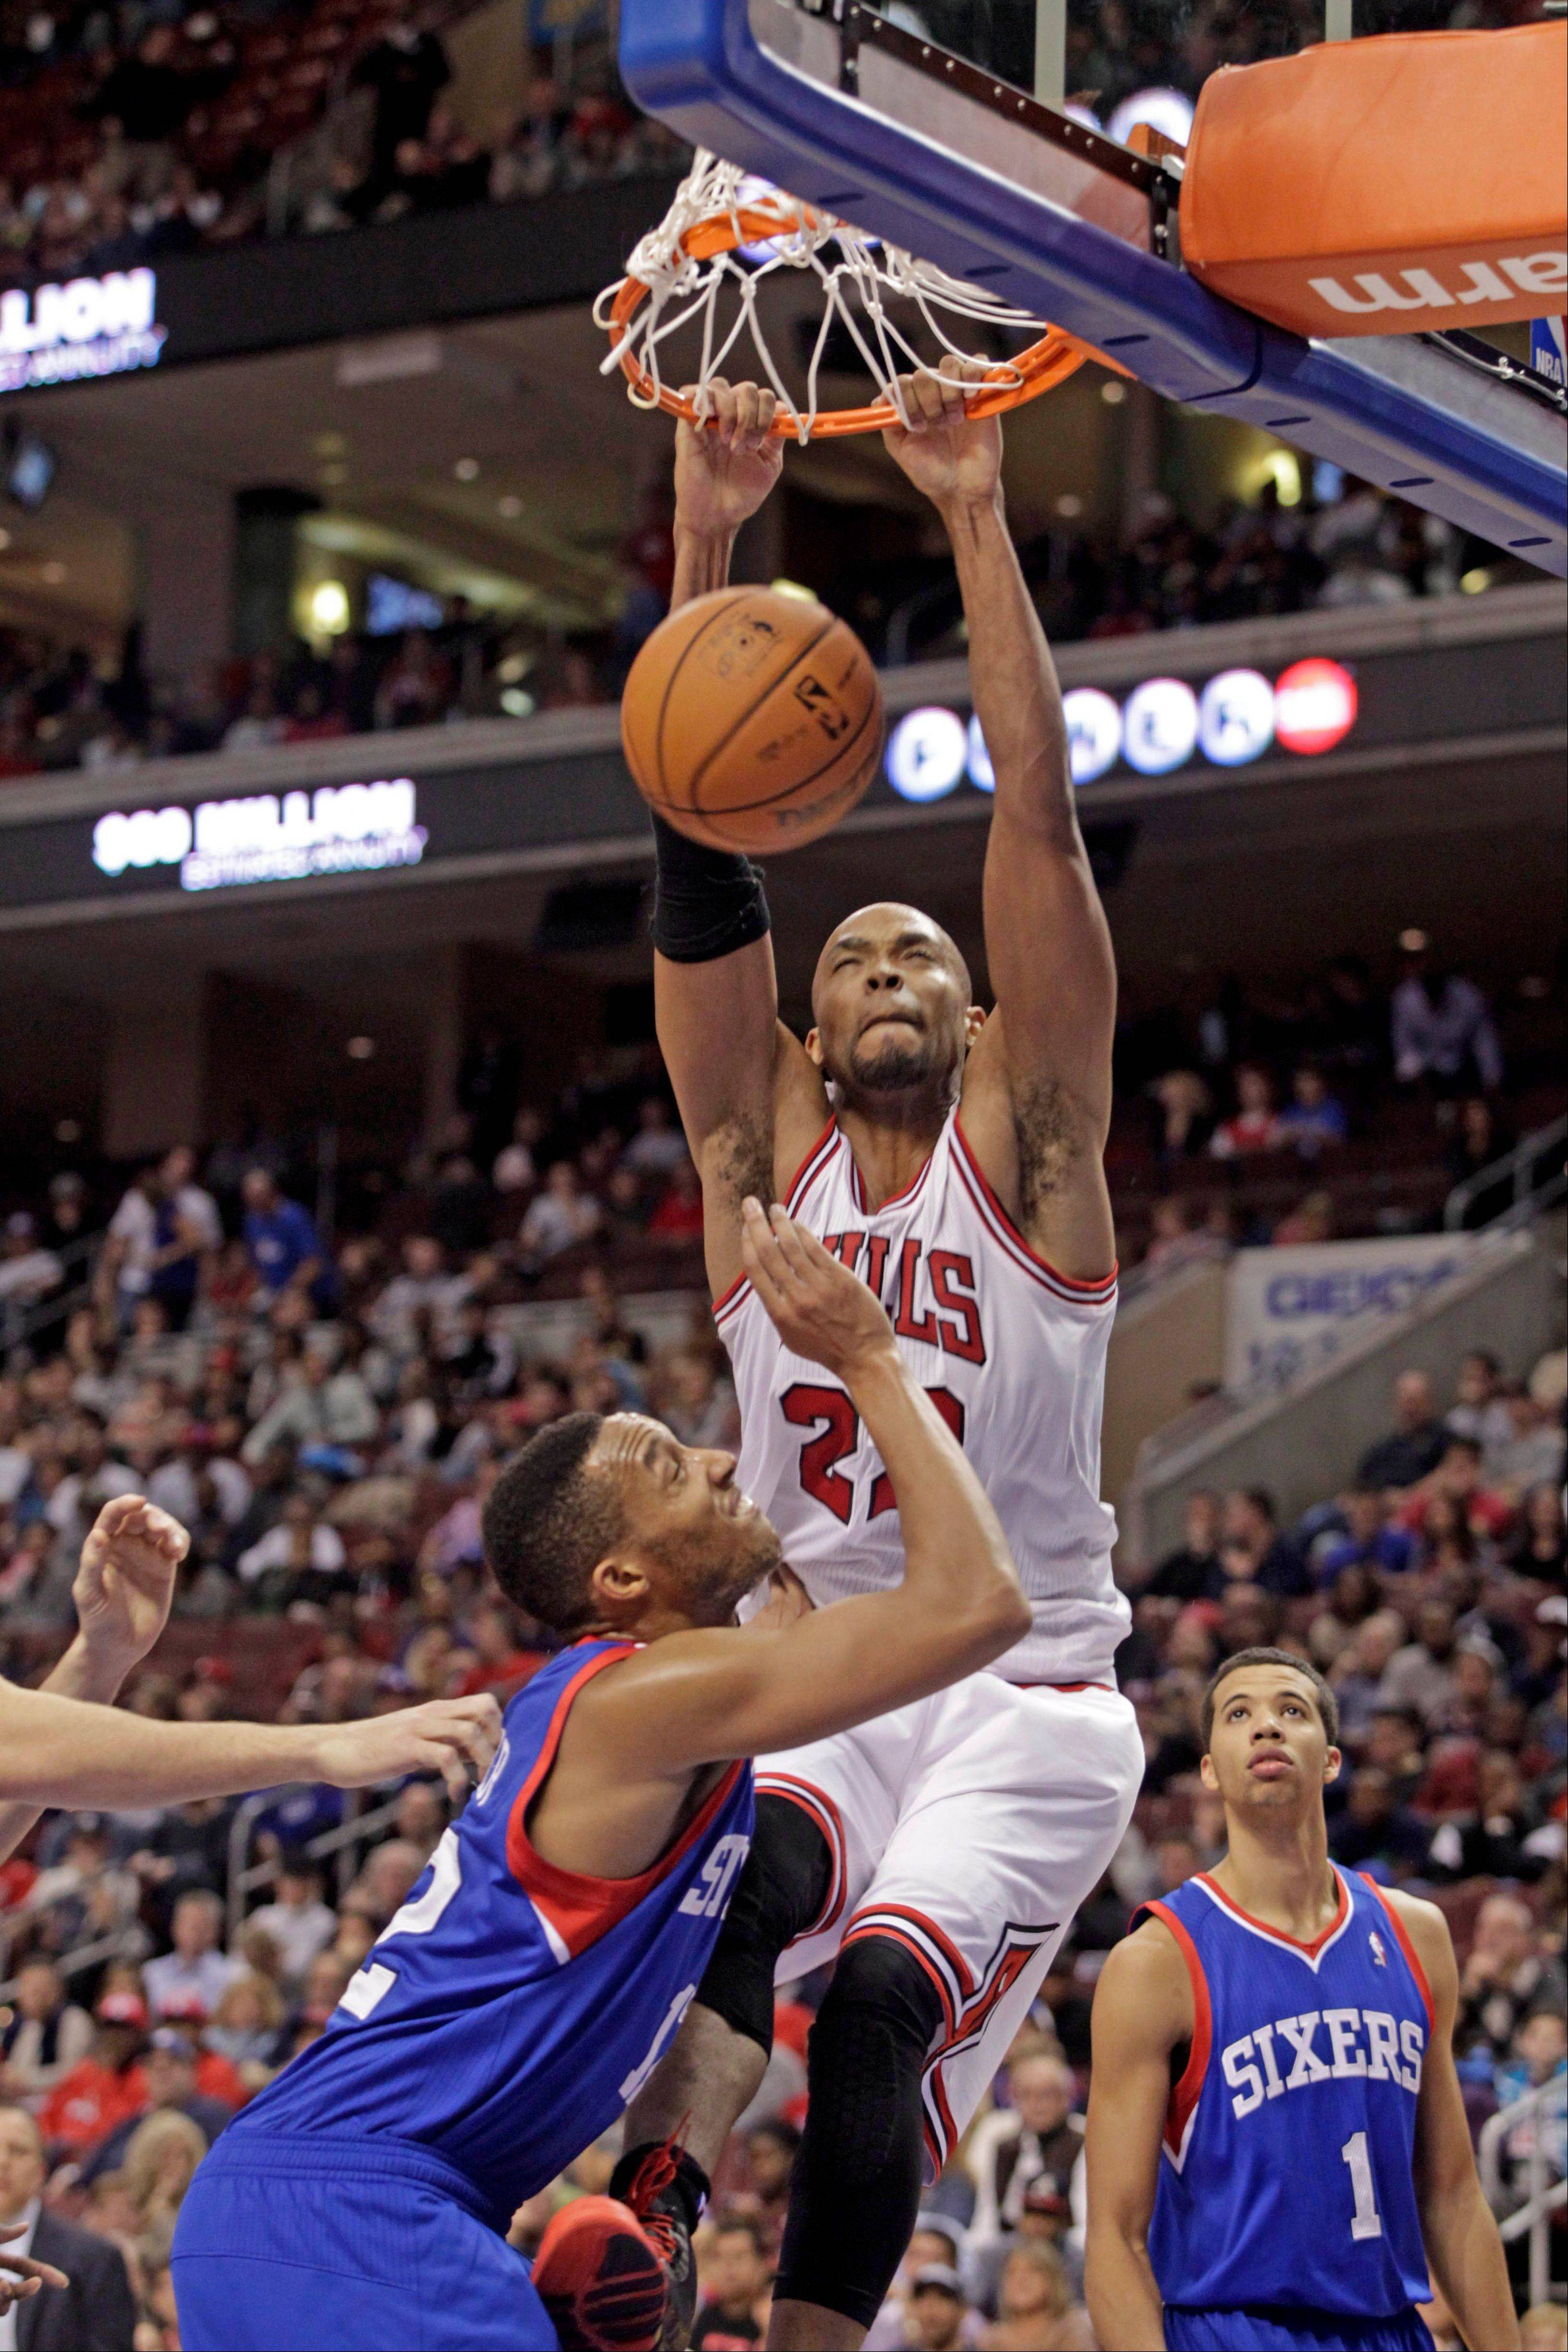 Bulls' Taj Gibson (22) scores over Philadelphia 76ers' Evan Turner in the first half of an NBA basketball game Saturday, Nov. 2, 2013, in Philadelphia.